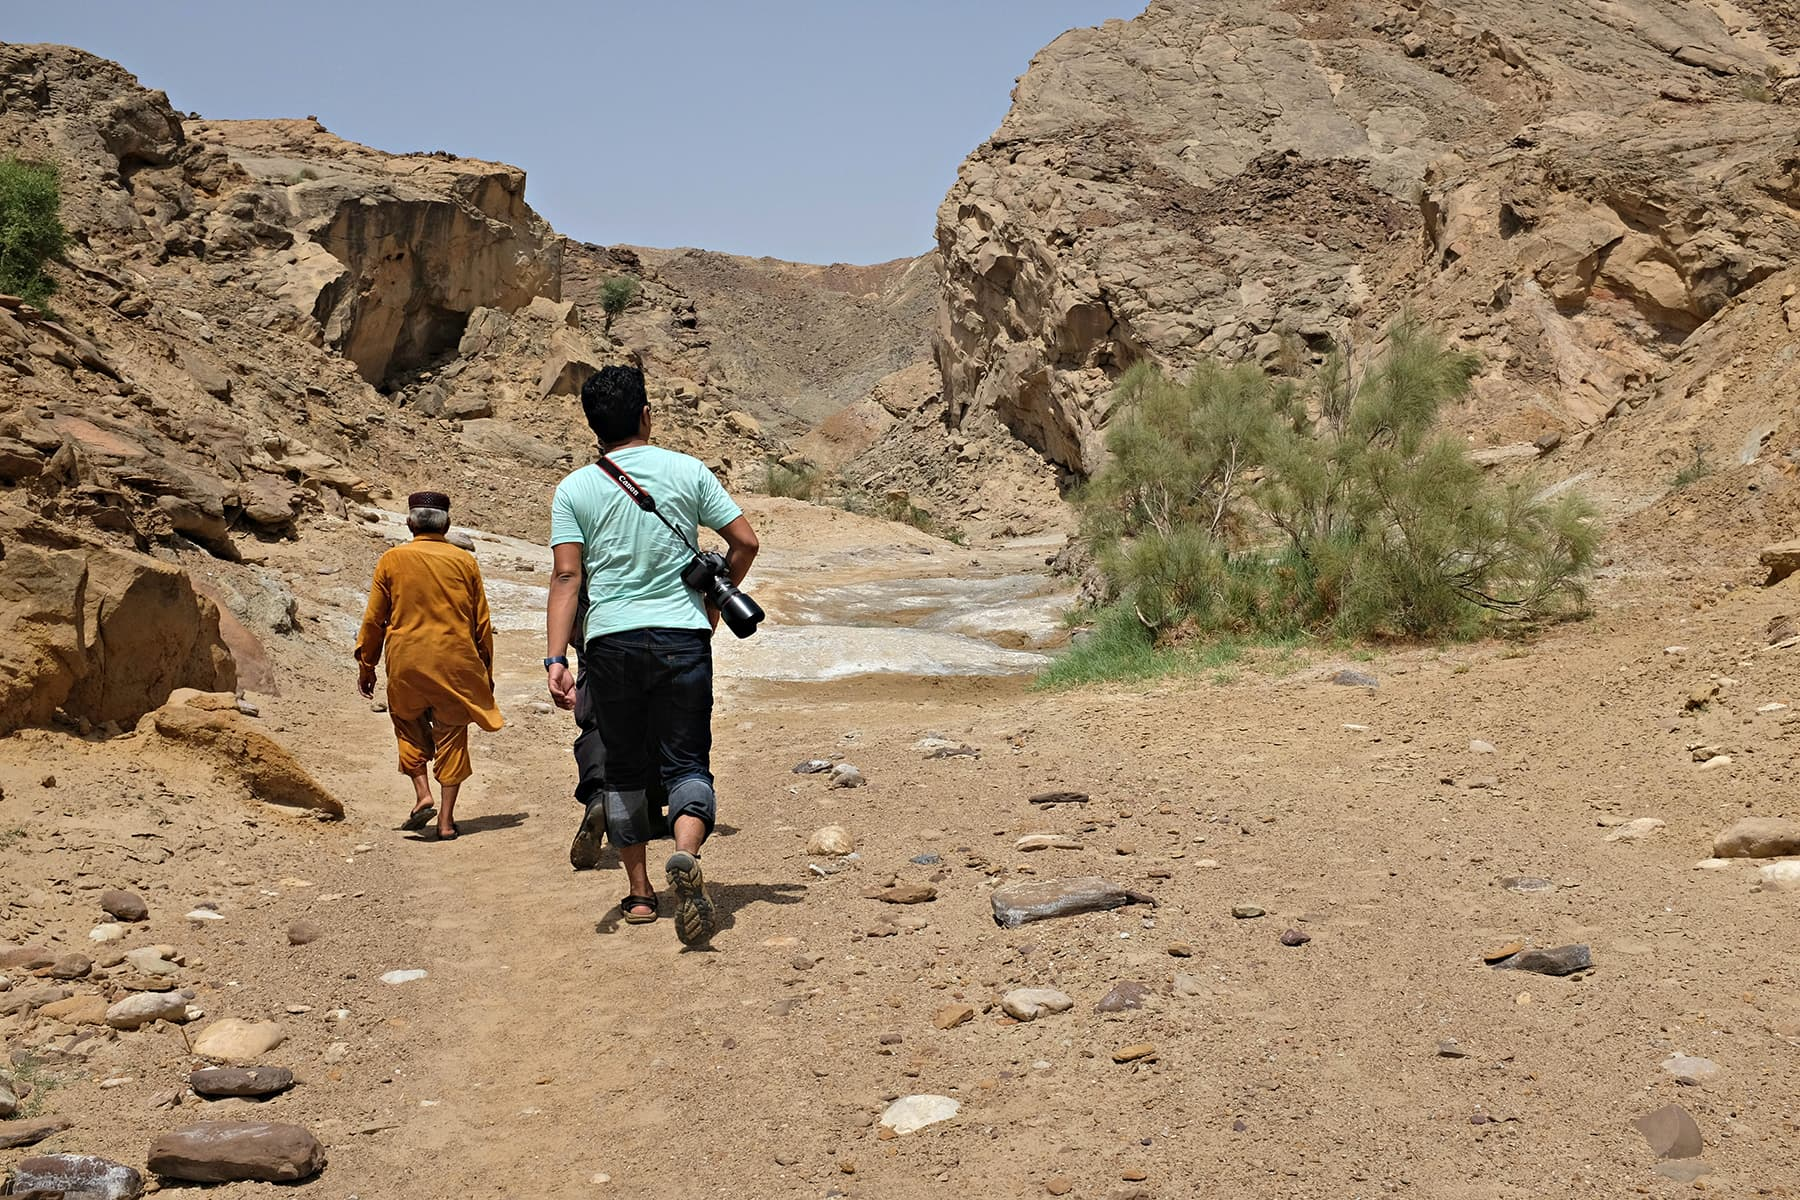 We park our cars and embark on our journey on foot towards Sado Mazo.